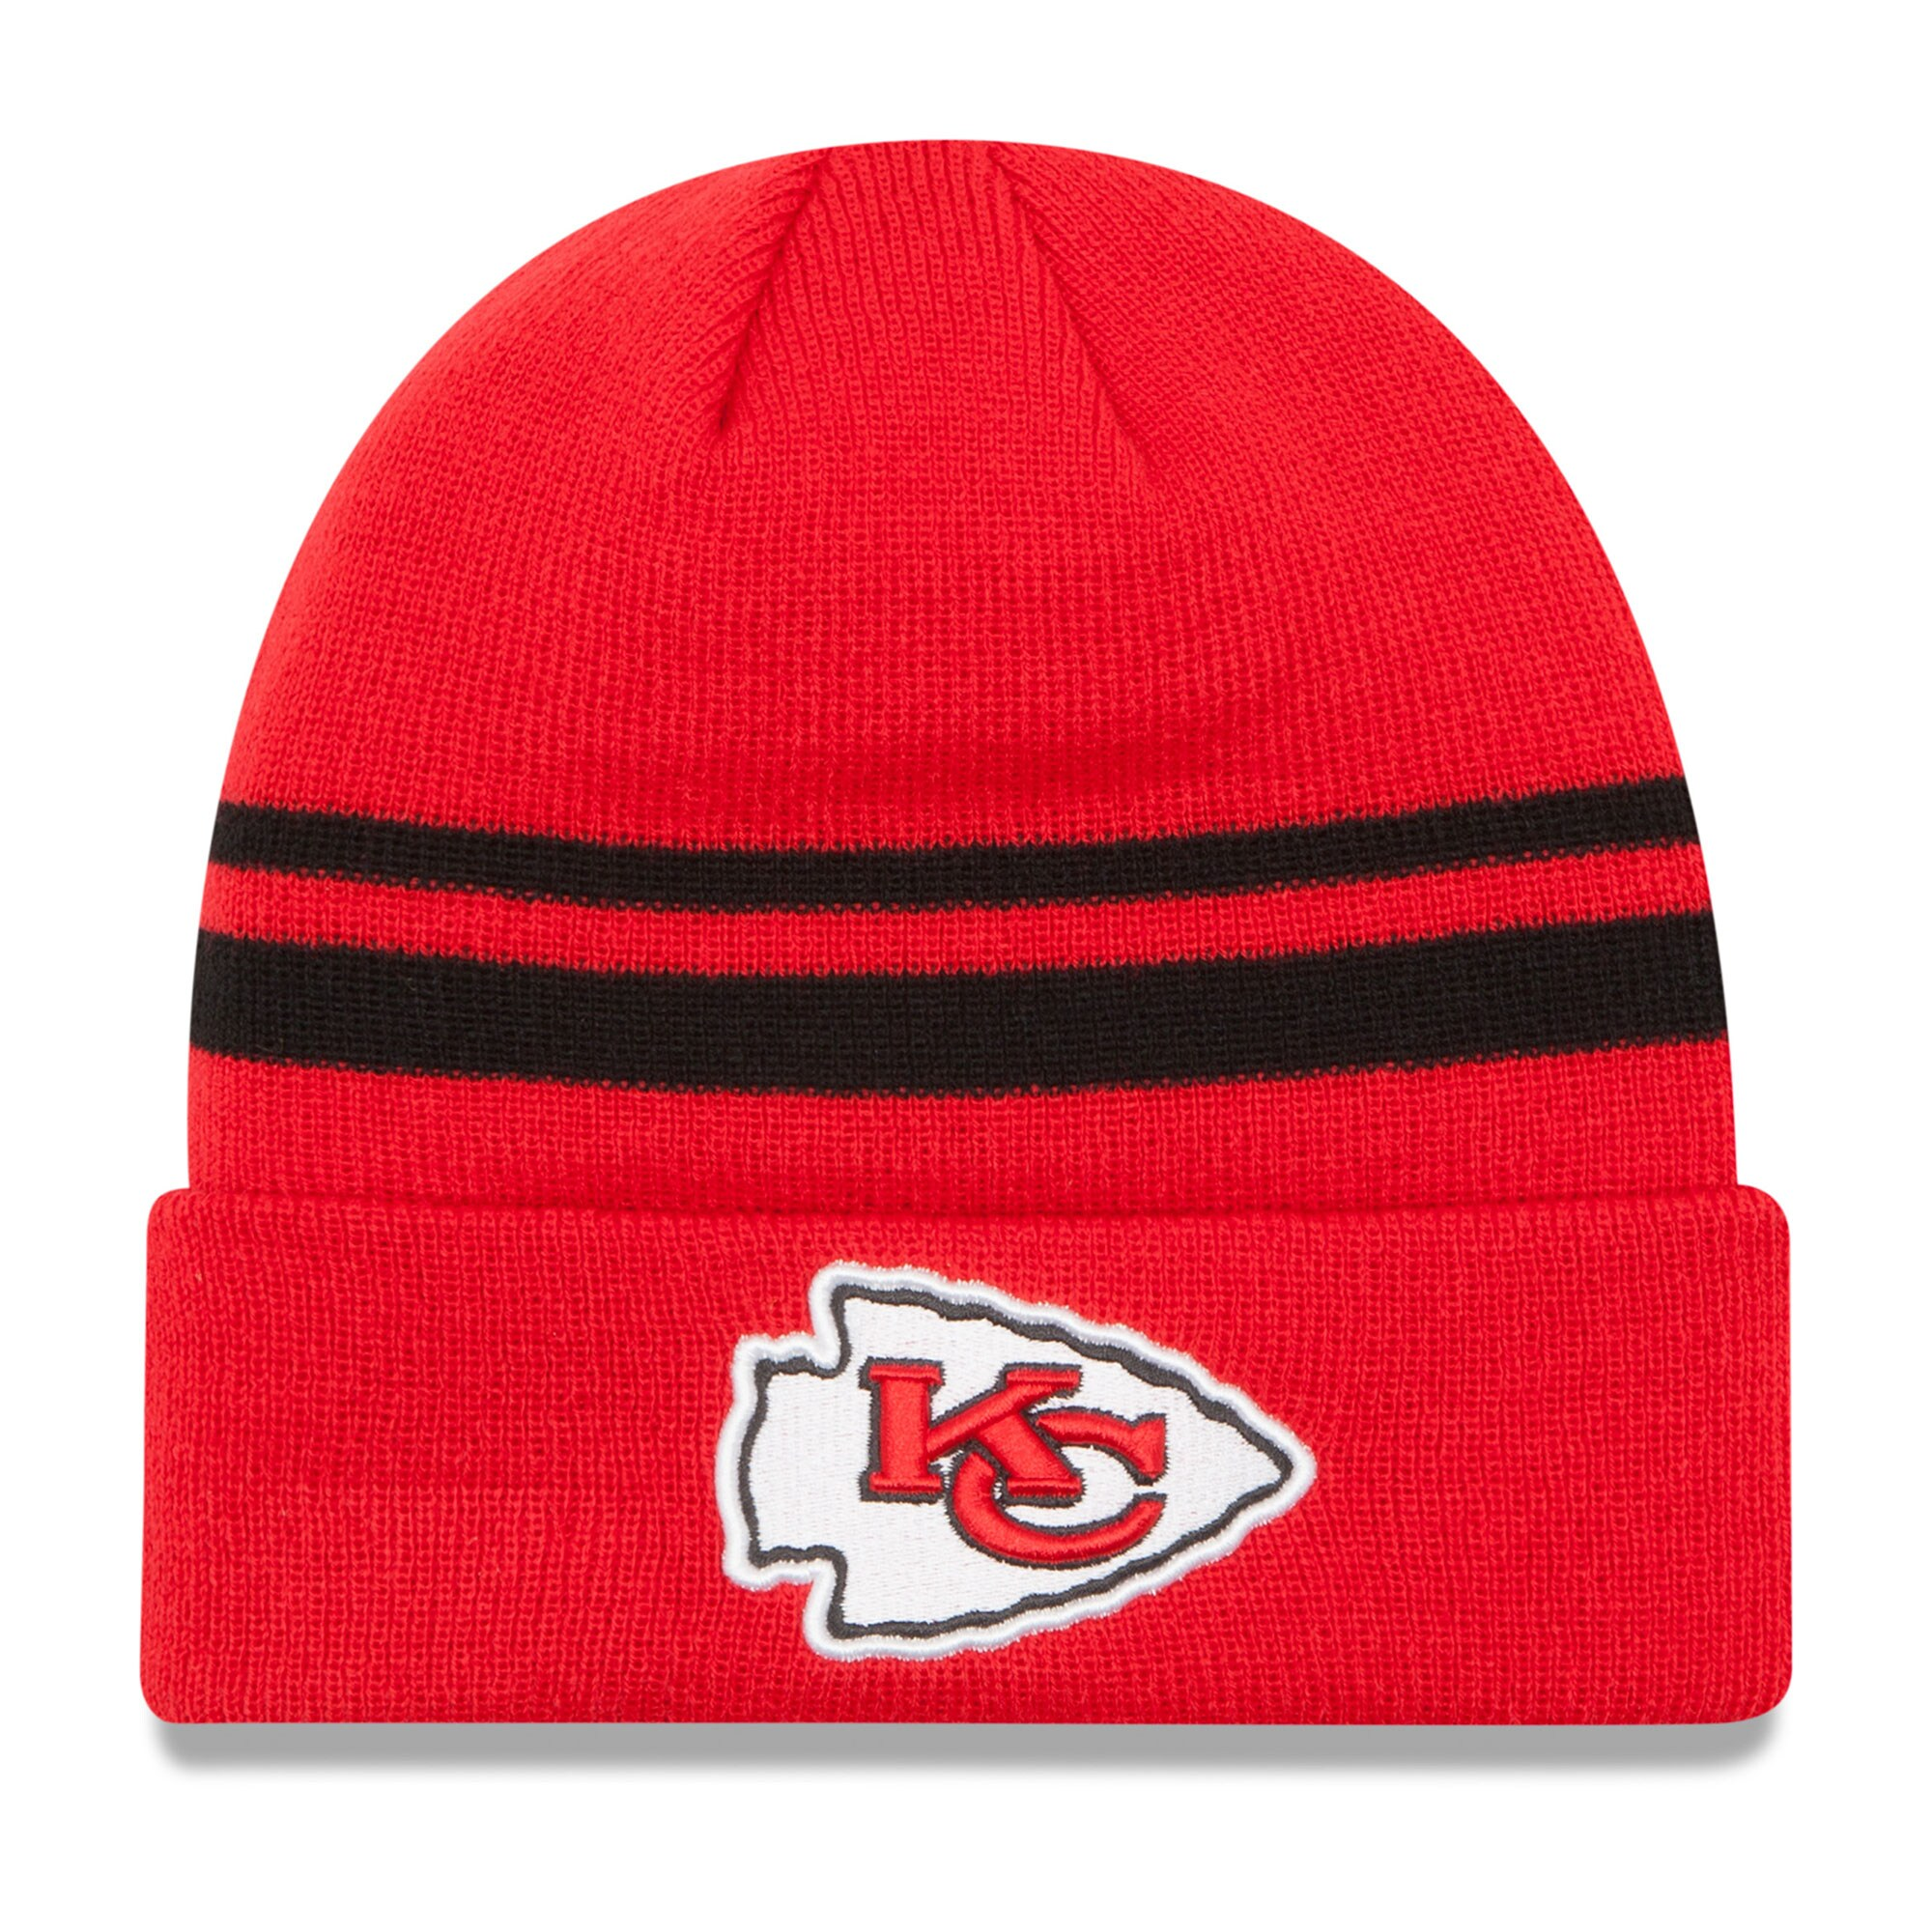 Kansas City Chiefs New Era Team Logo Cuffed Knit Hat - Red